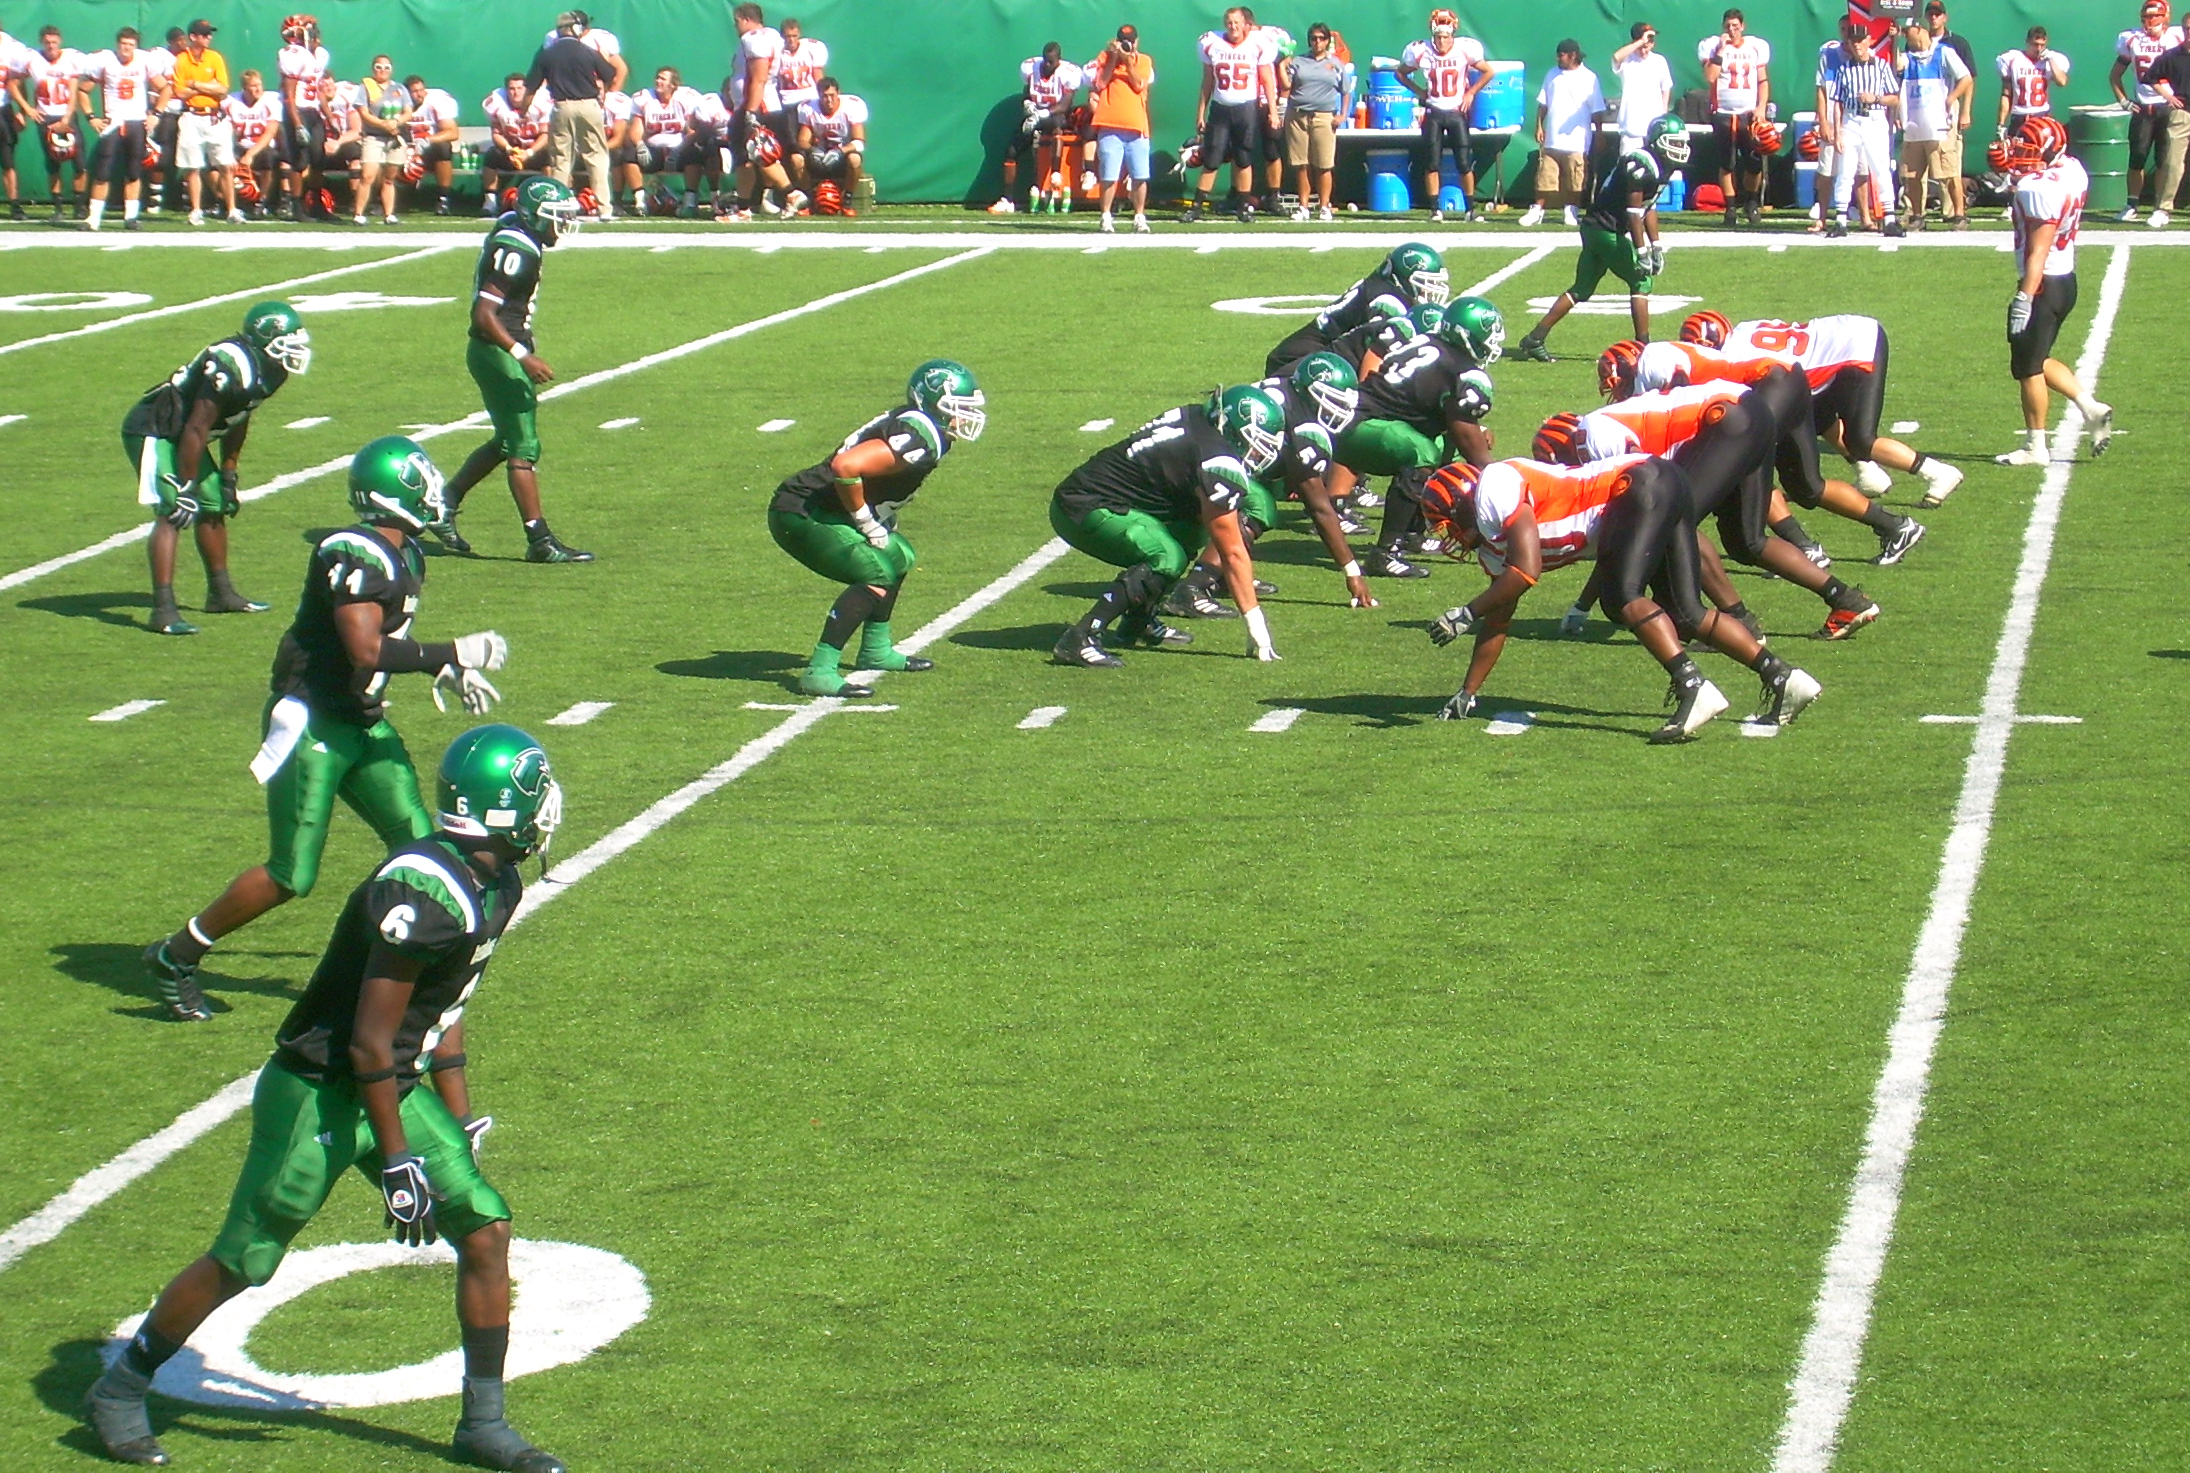 http://commons.wikipedia.org/wiki/File:NSU_Football.jpg